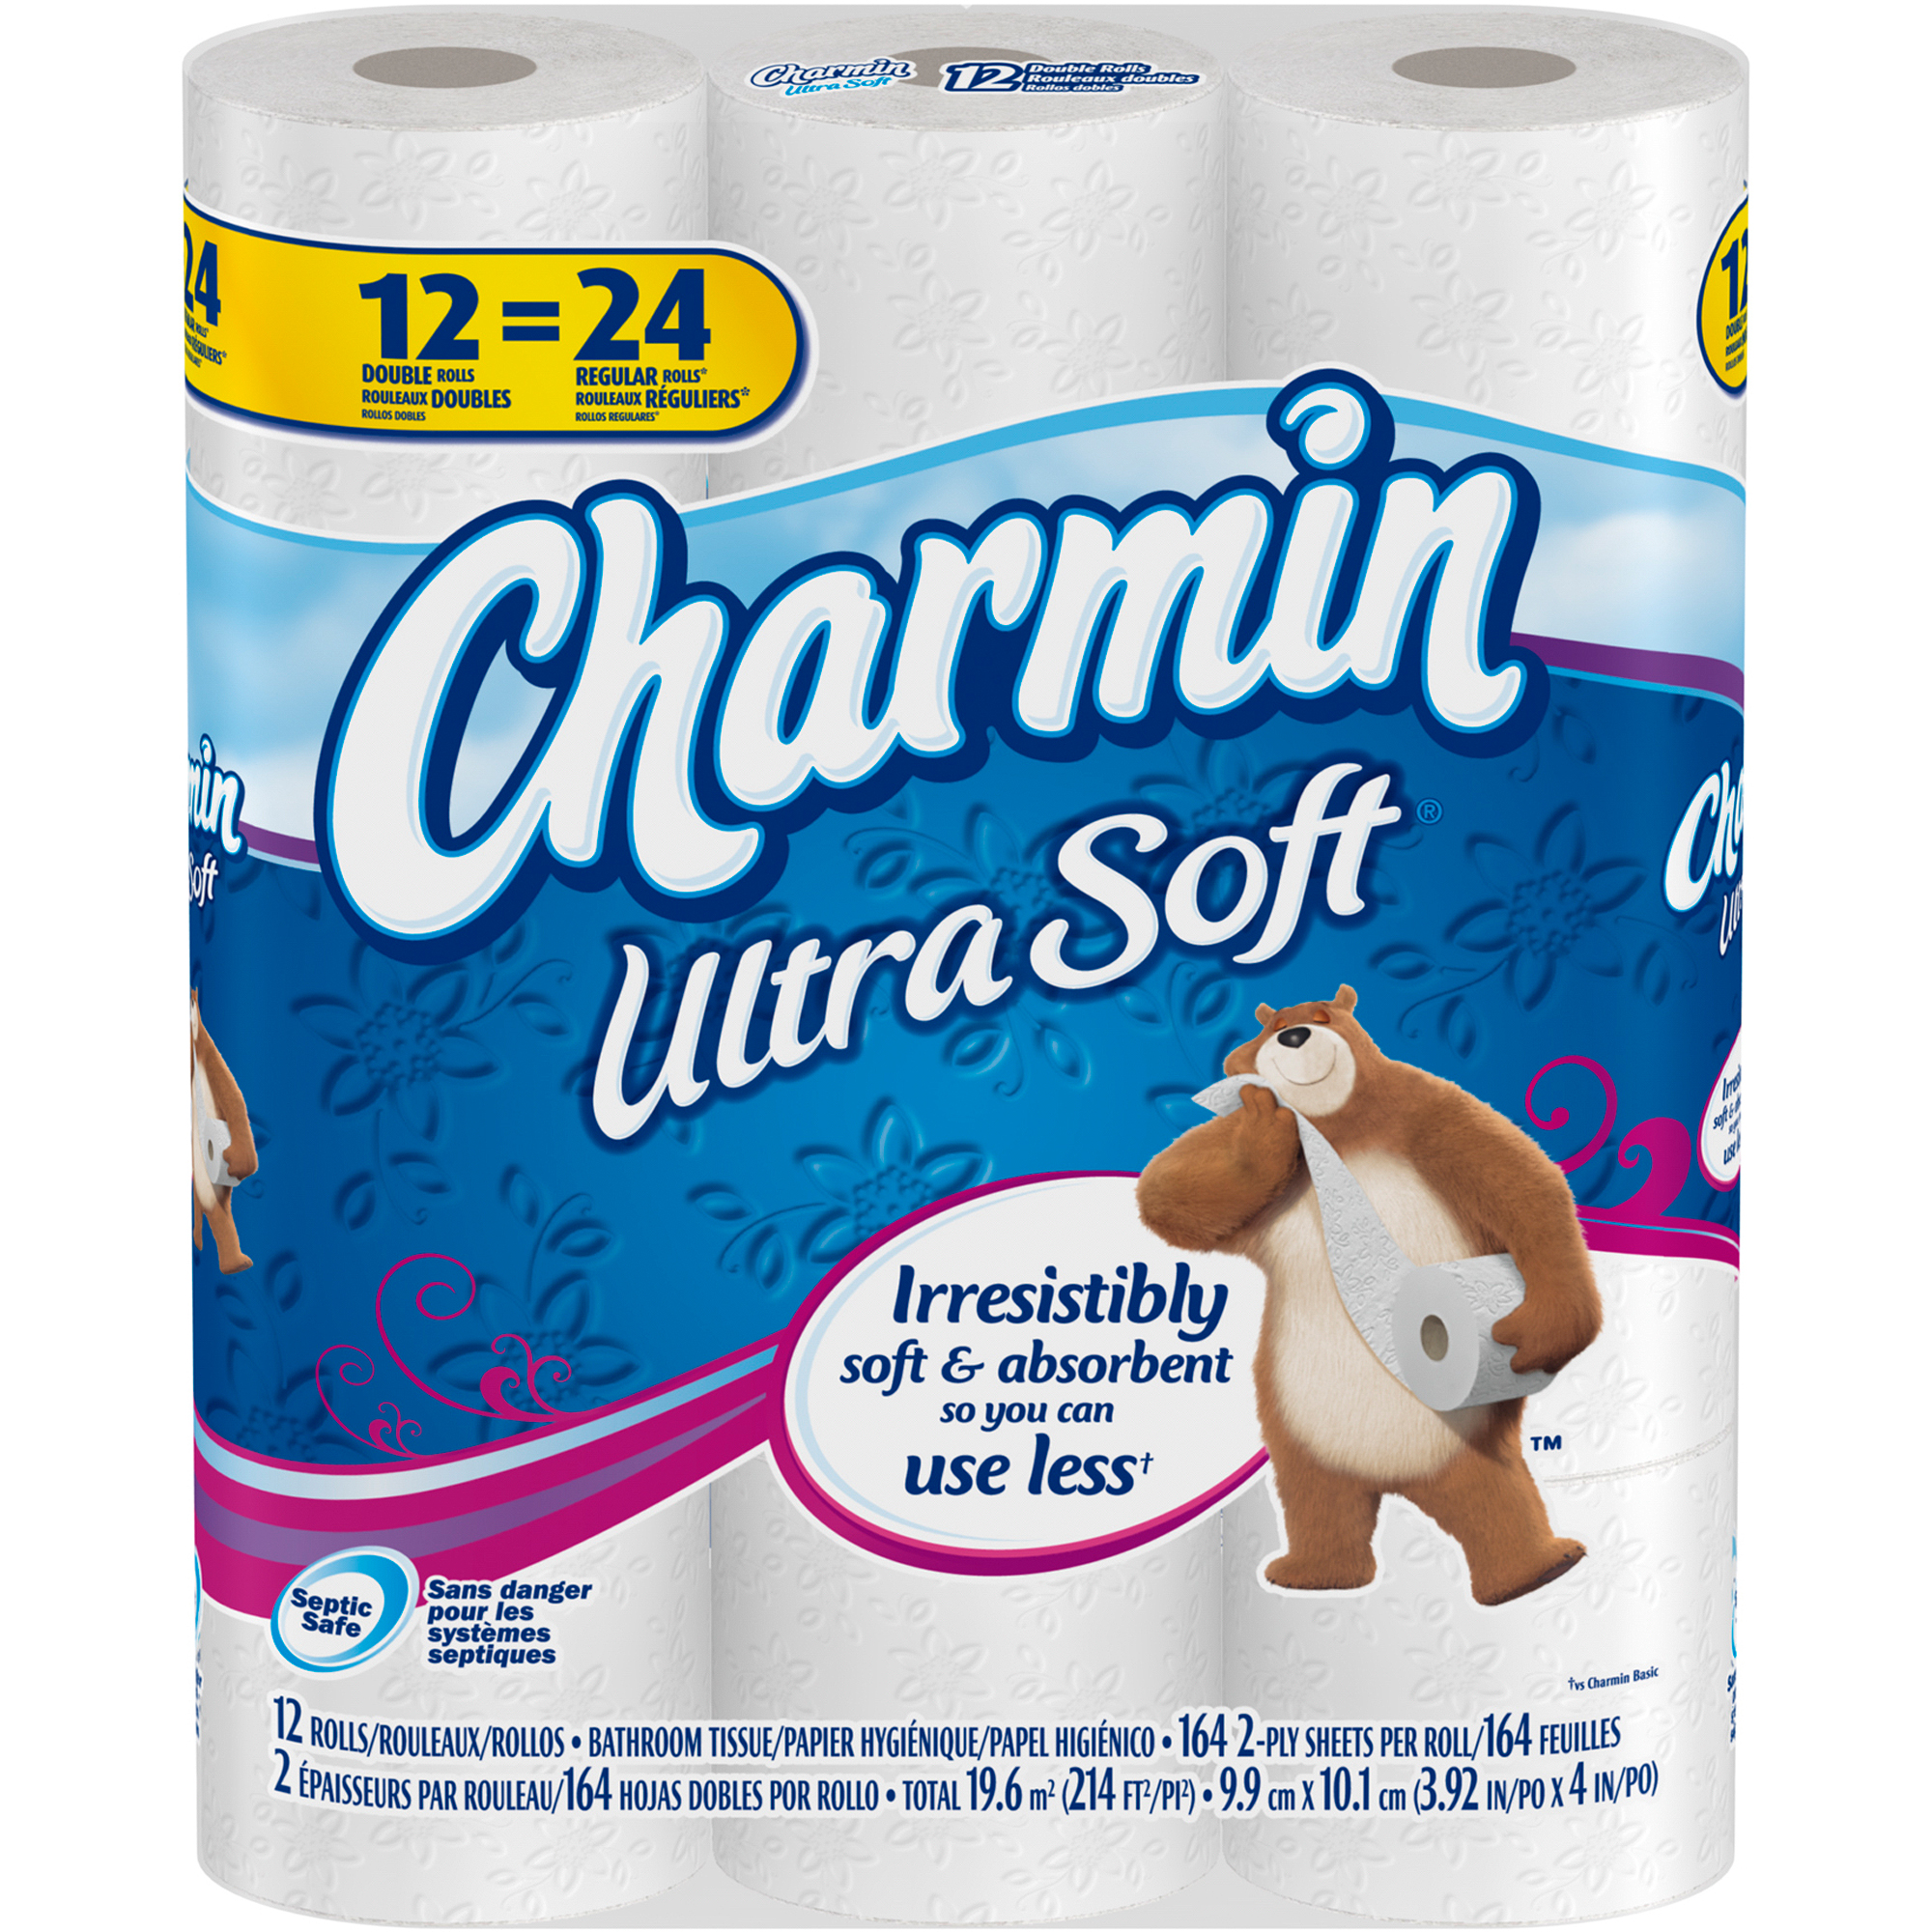 Free Charmin Ultra Toilet Paper Double Rolls